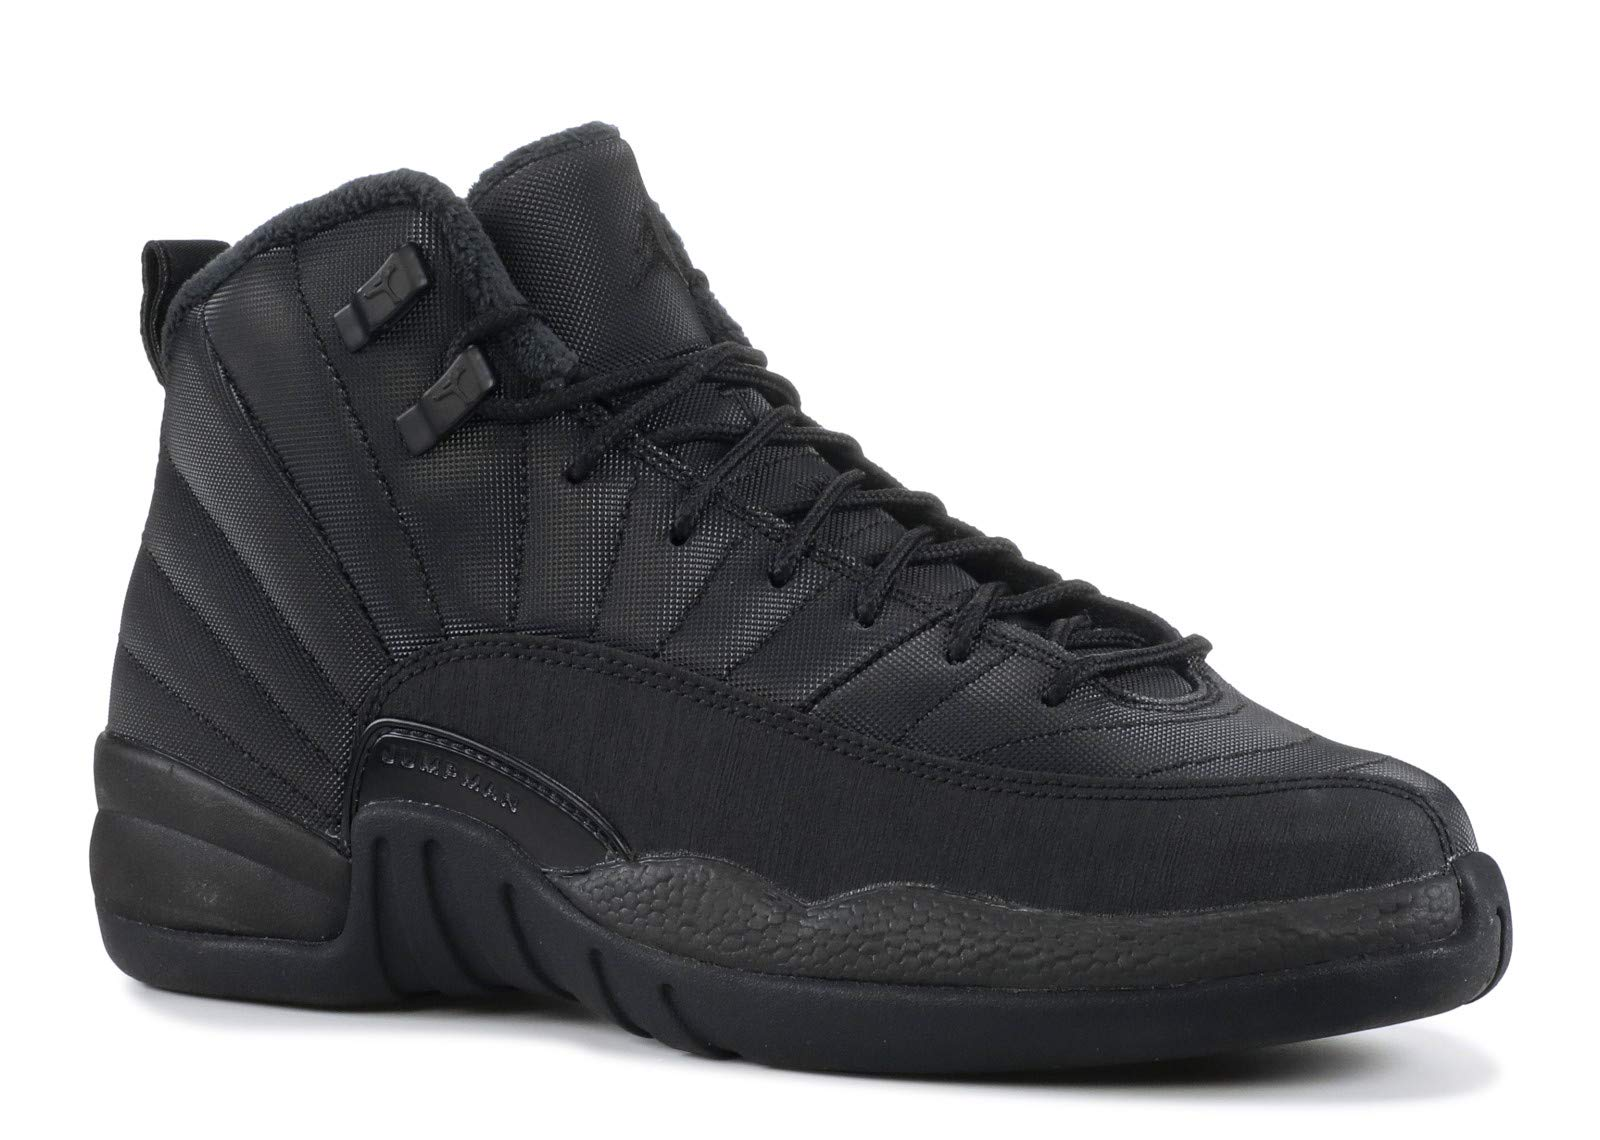 Nike Air Jordan 12 Retro Winter GS Triple Black BQ6852-001 (Size: 6.5Y)